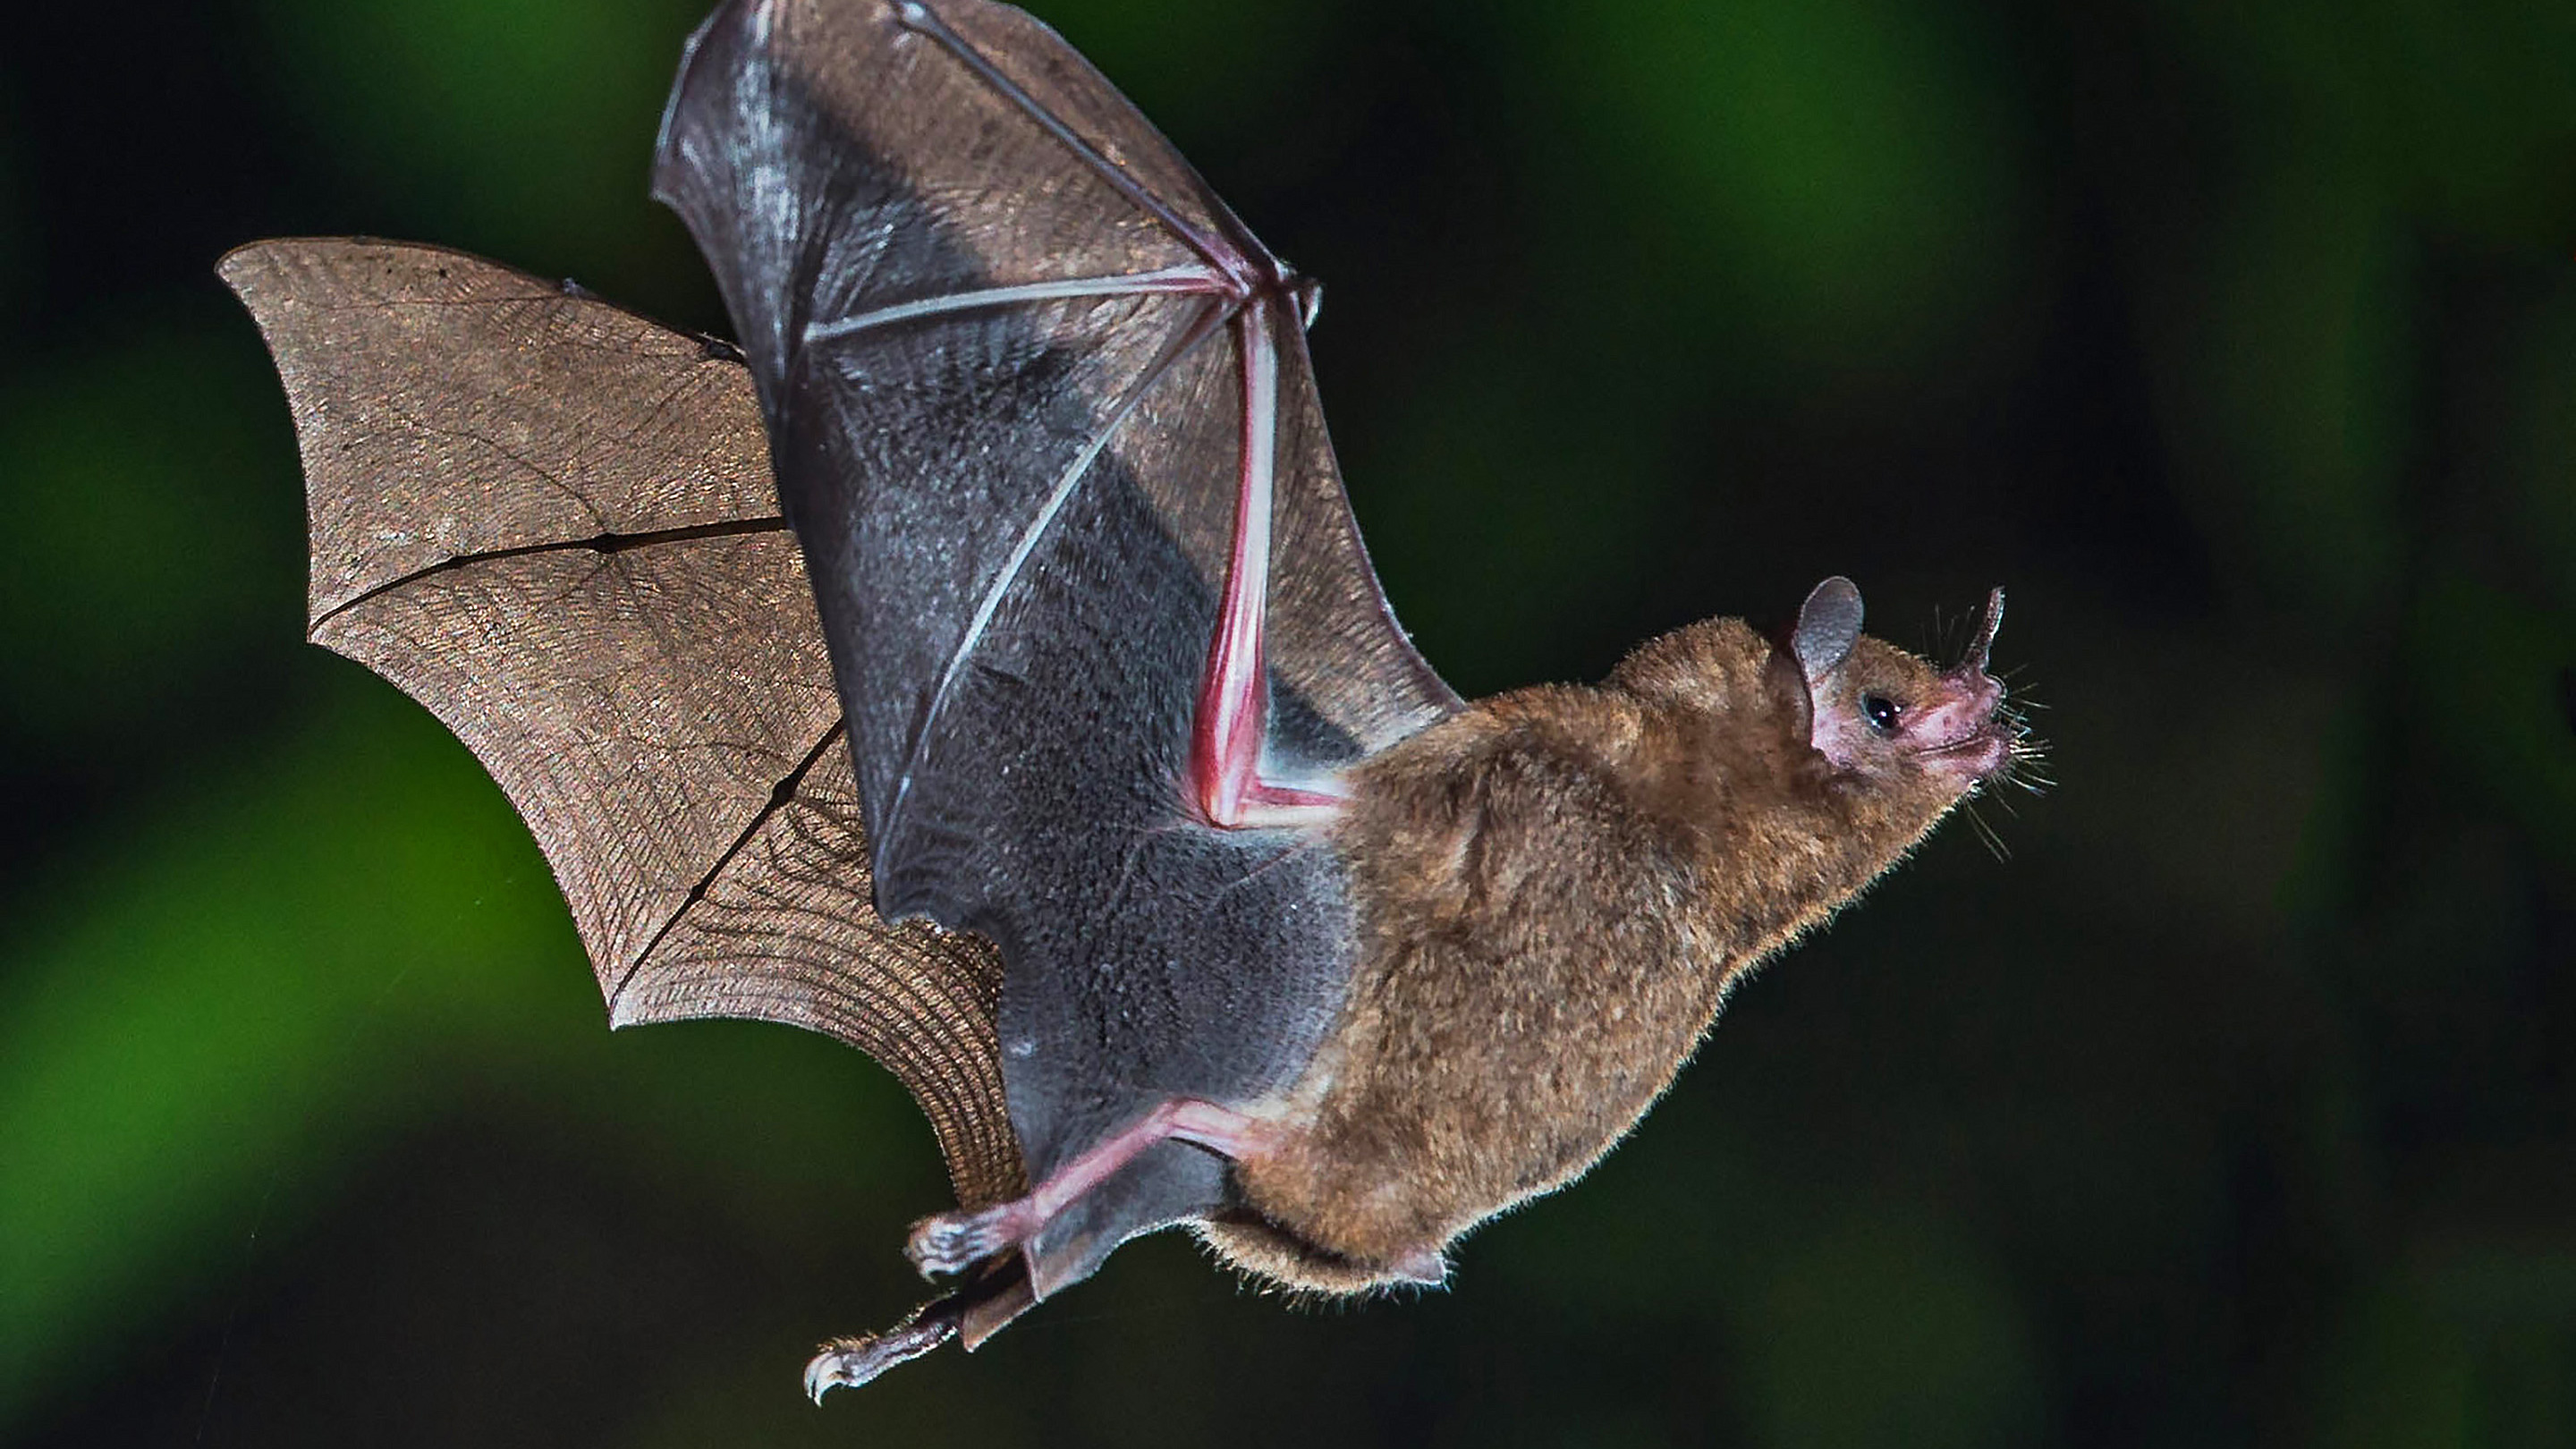 Photograph of a bat in flight.